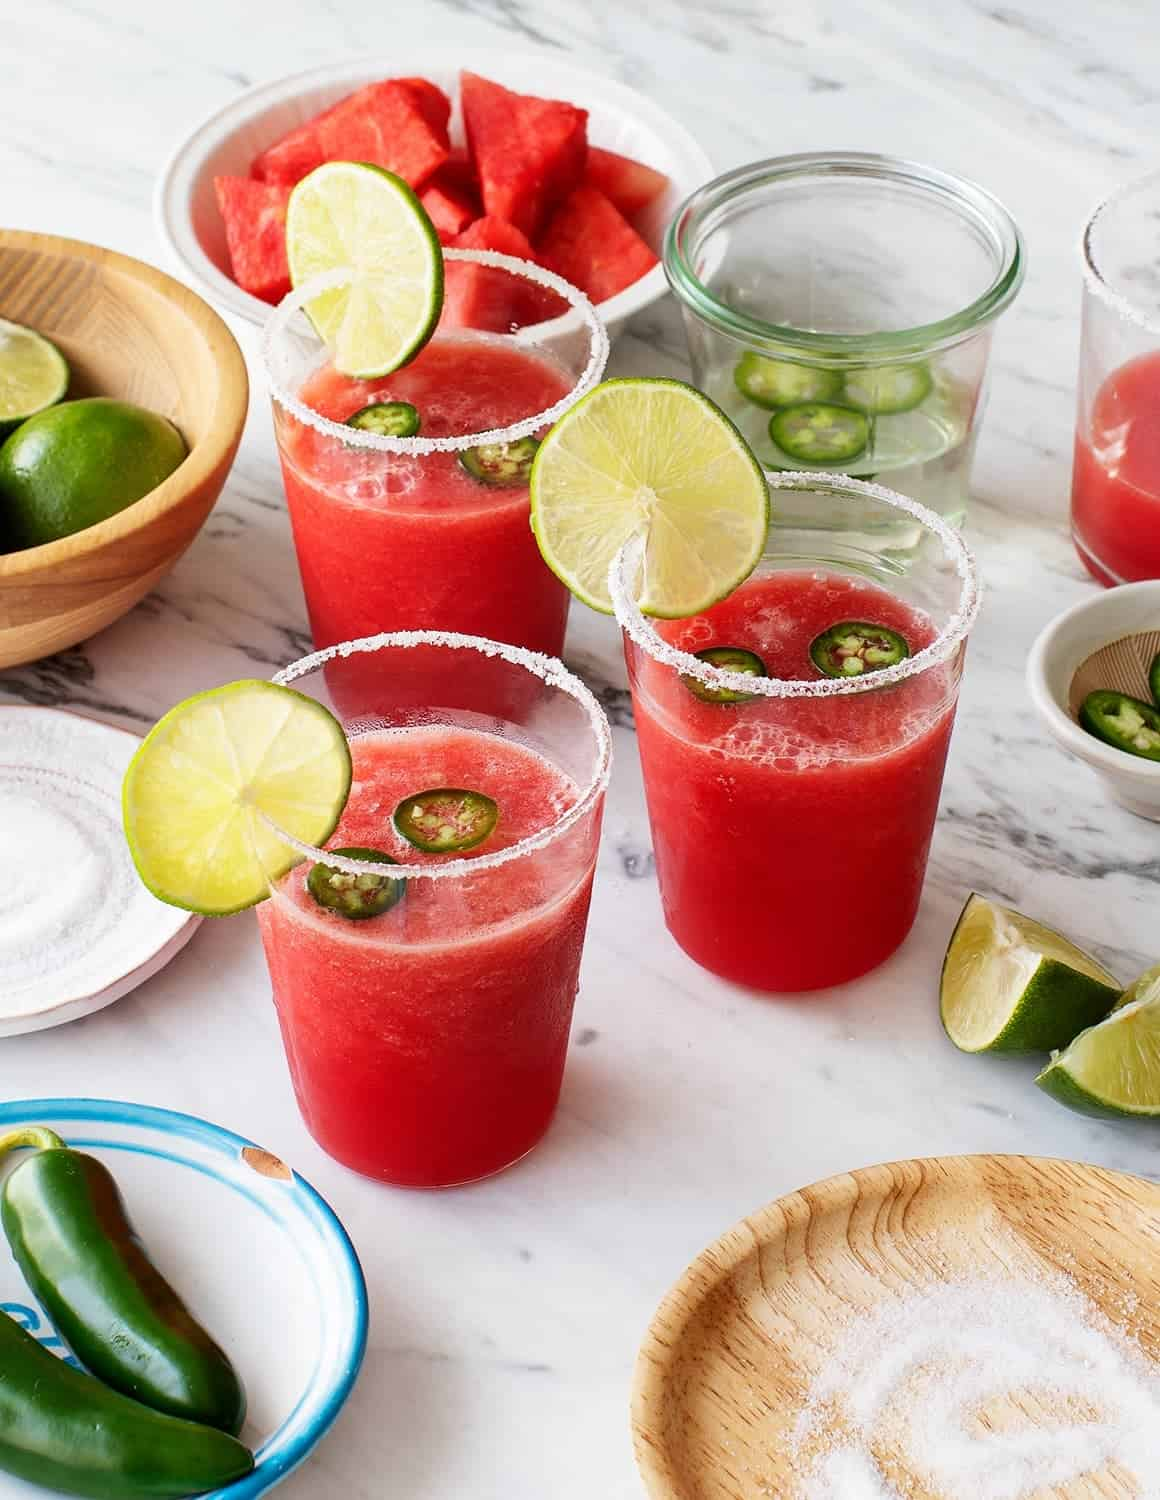 Spicy Watermelon Margaritas in glasses with lime slices